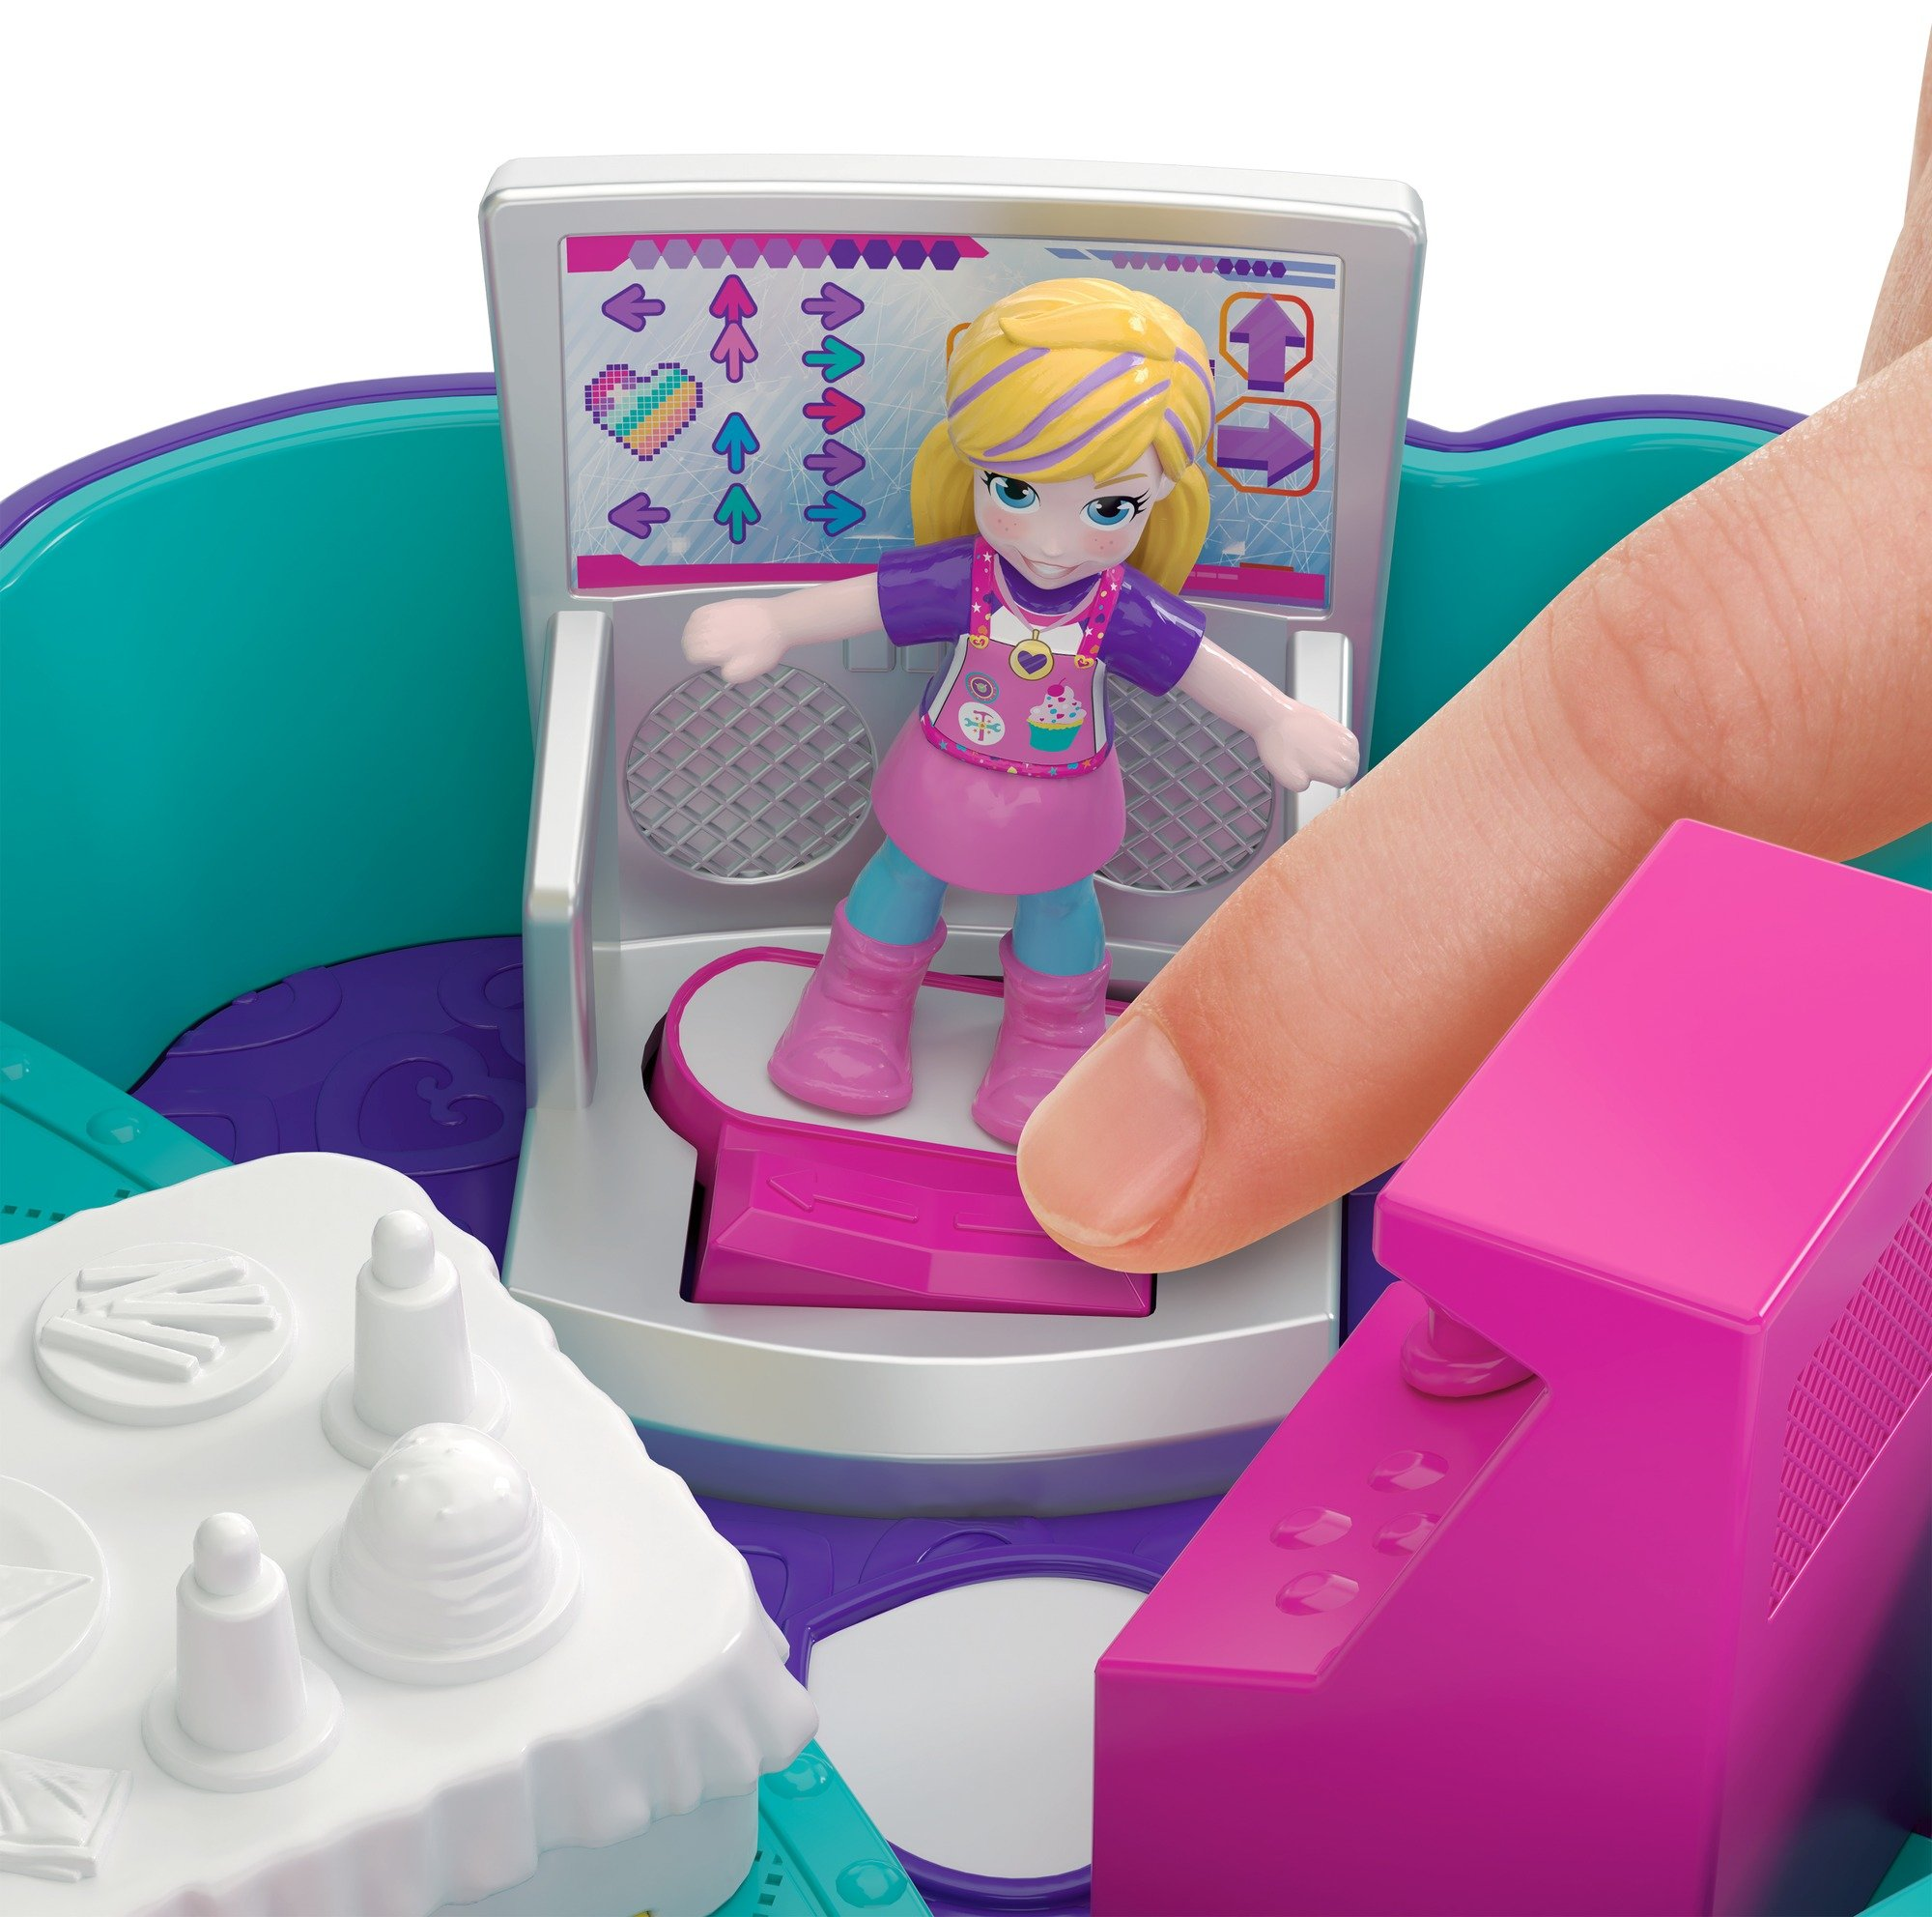 Polly Pocket Sweet Treat Compact Multicolor by Polly Pocket (Image #4)